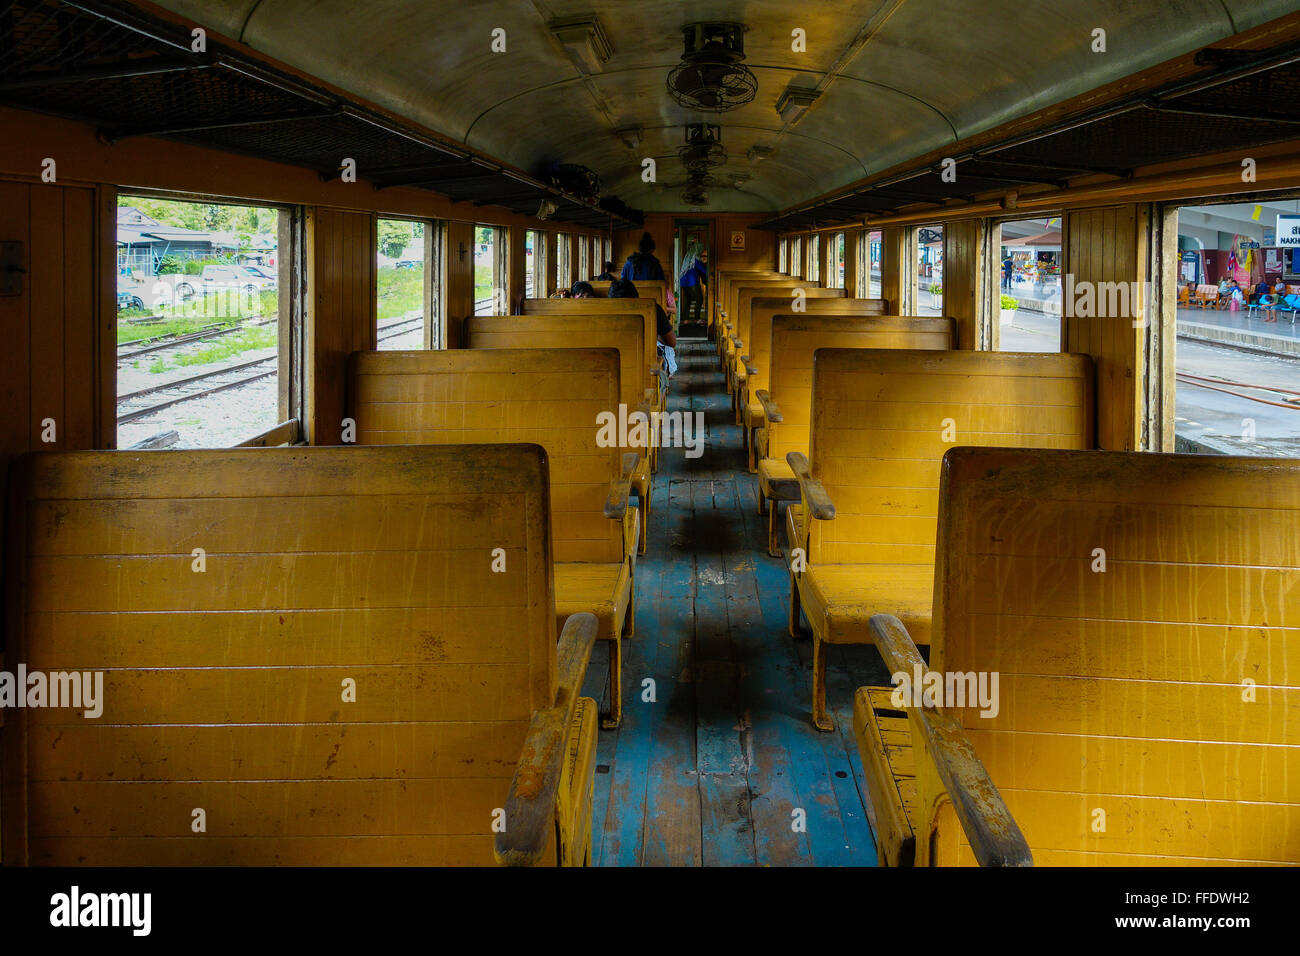 Old Train Passenger Carriage With Wooden Bench Seat